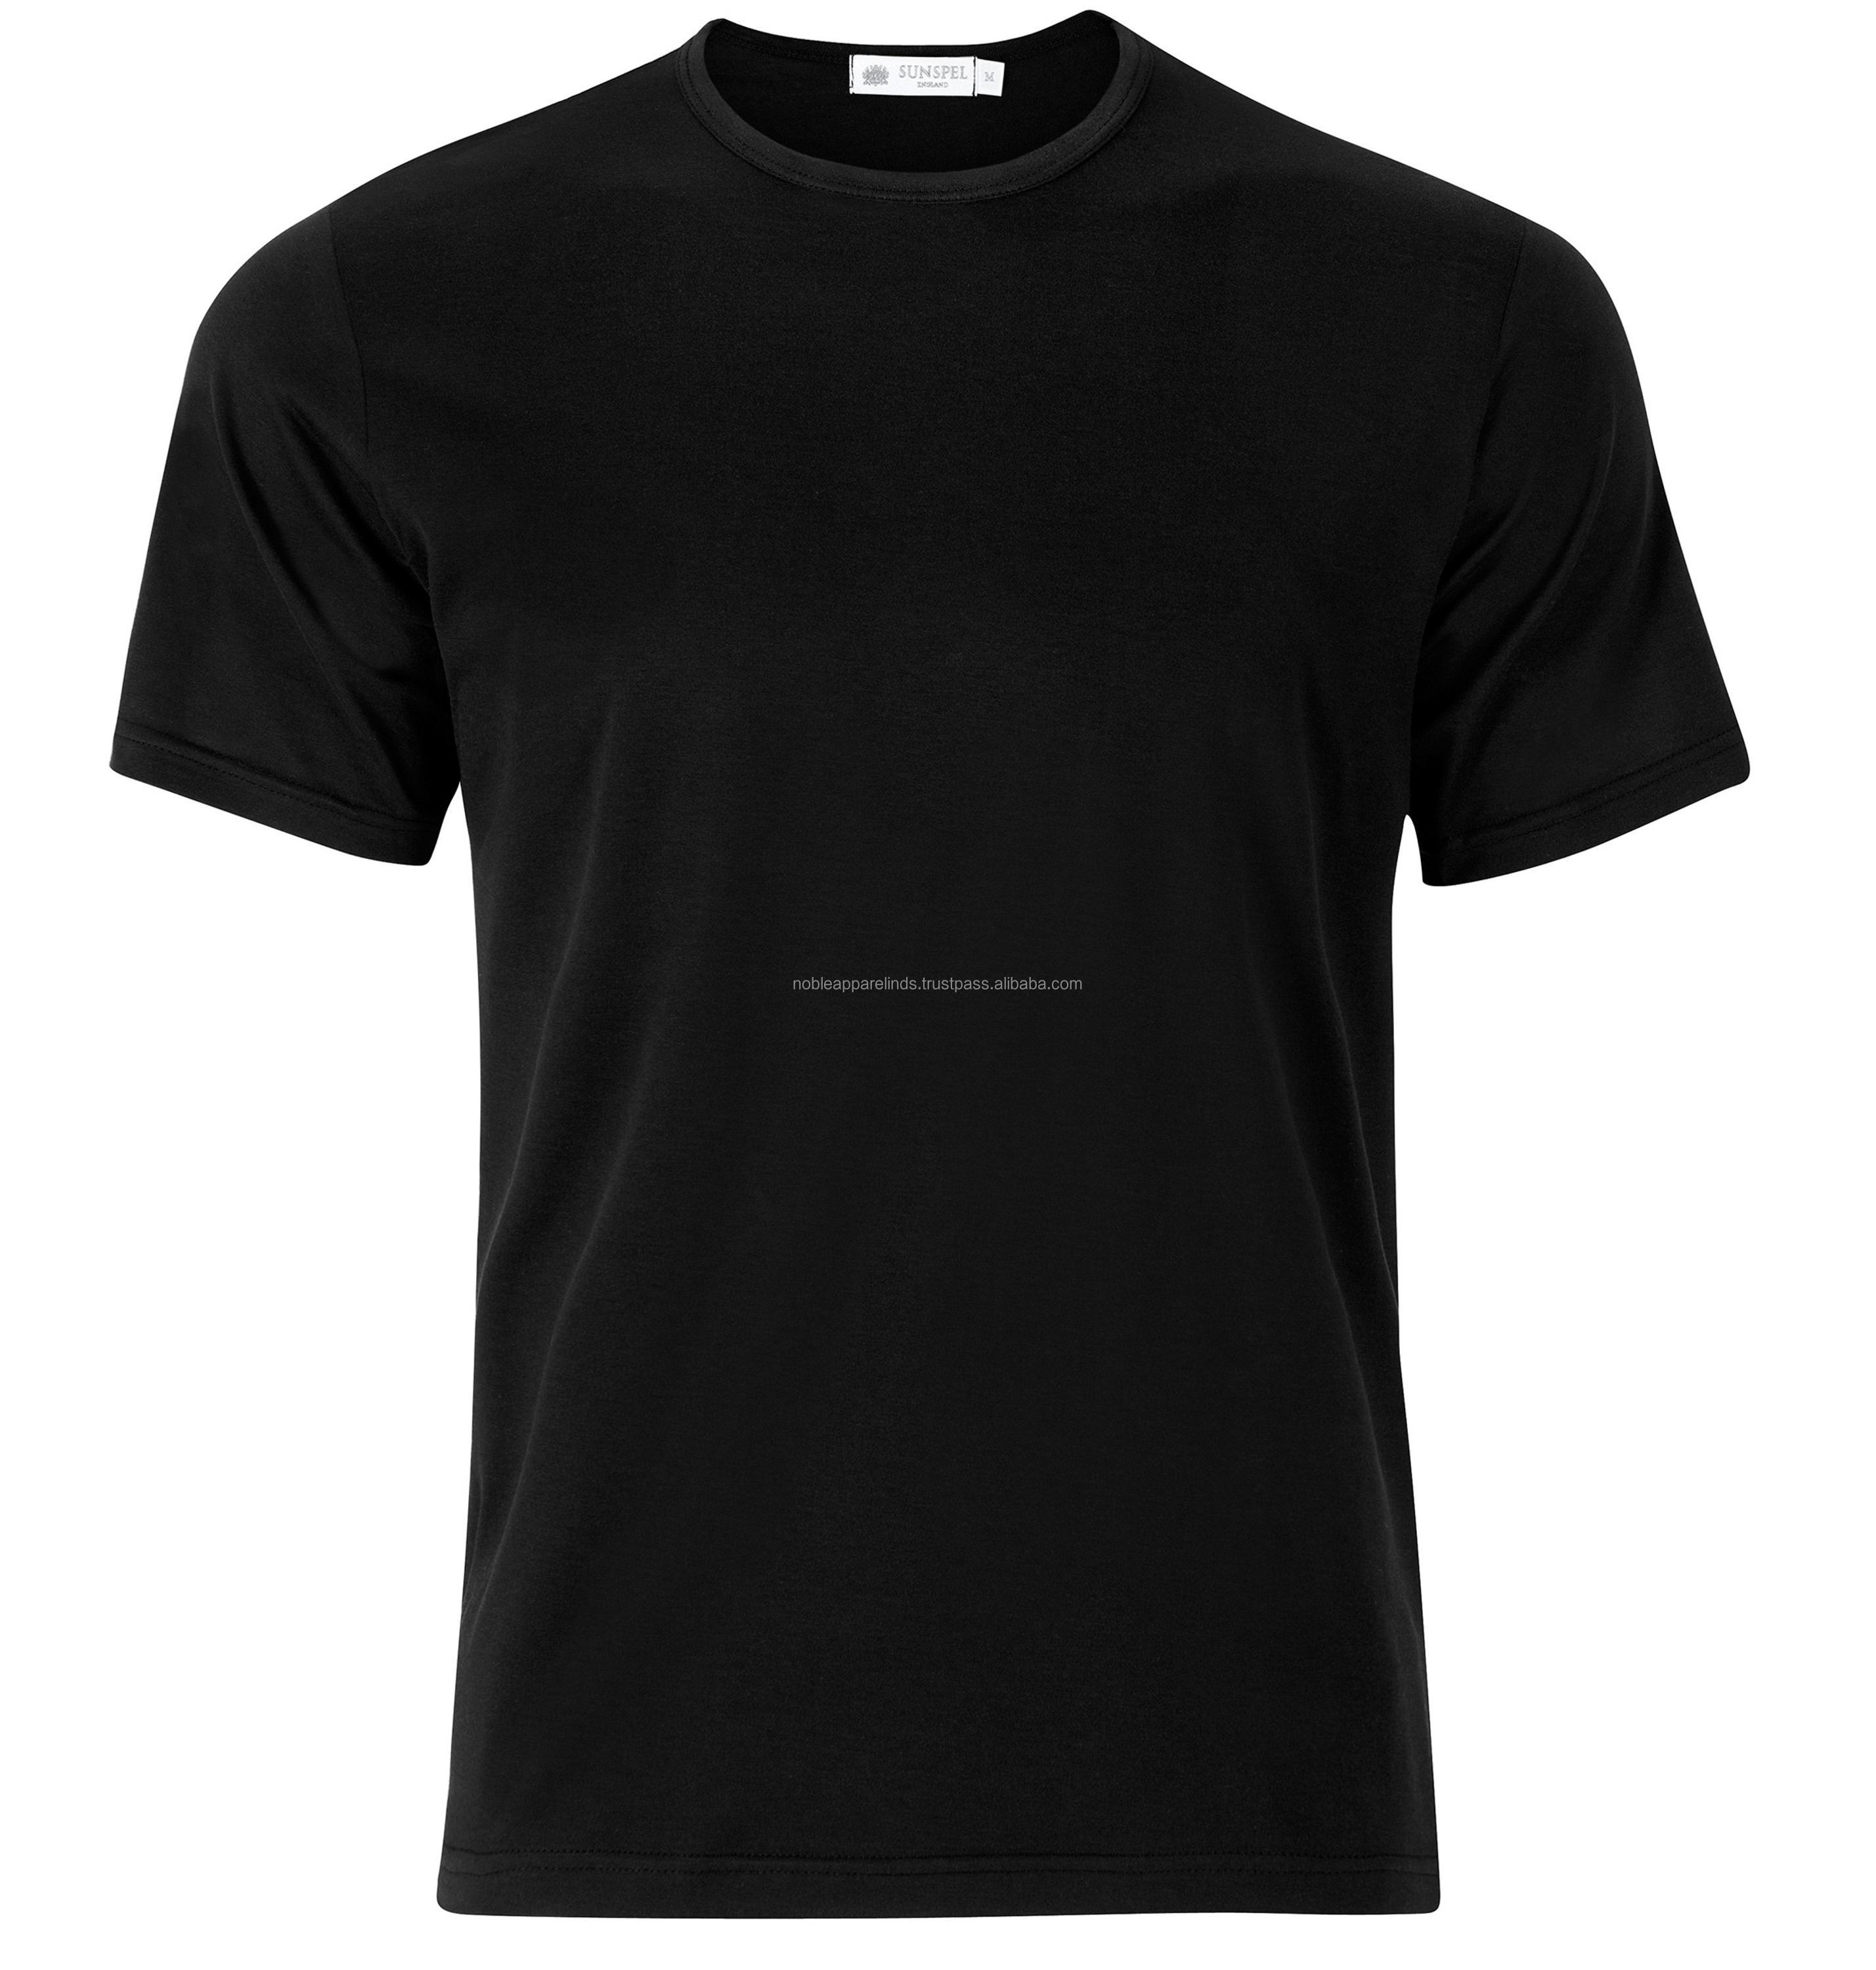 service high quality dark black slim fit custom bamboo cotton t shirts nice pain deign nice color t shirts for men